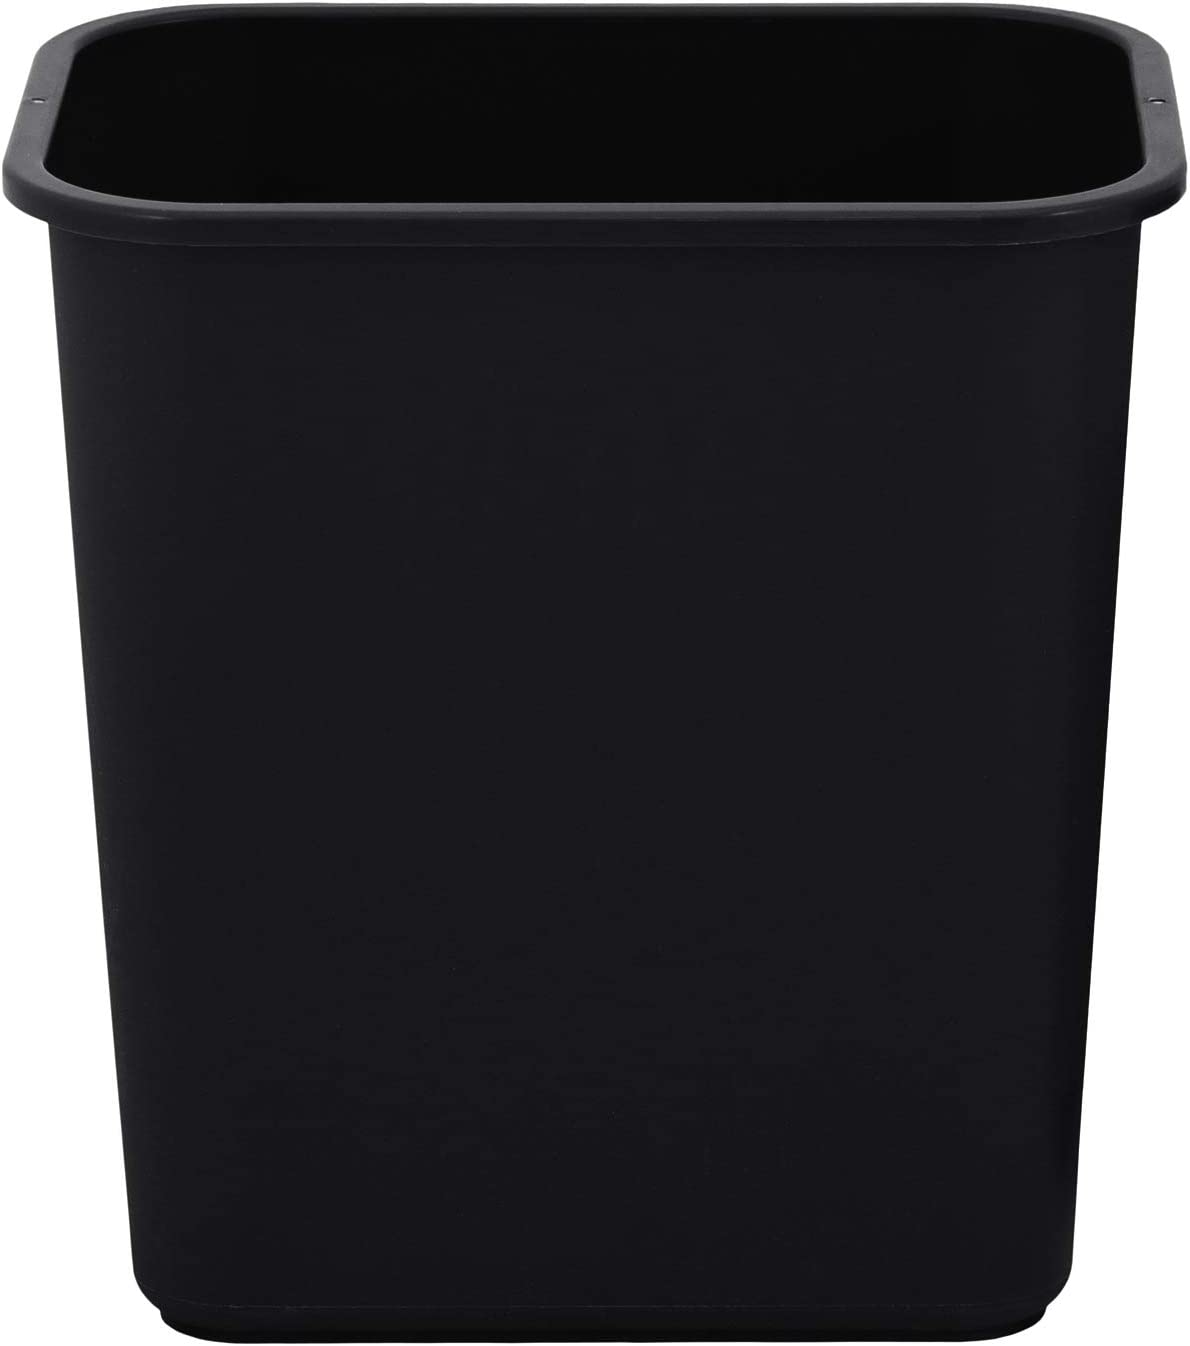 United Solutions 7 Gallon/28 Quart Space-Efficient Trash Wastebasket | Pack of 12 | Fits Under Desk | Small, Narrow Spaces in Commercial Office, Kitchen, Home Office, Dorm | Easy to Clean | Black